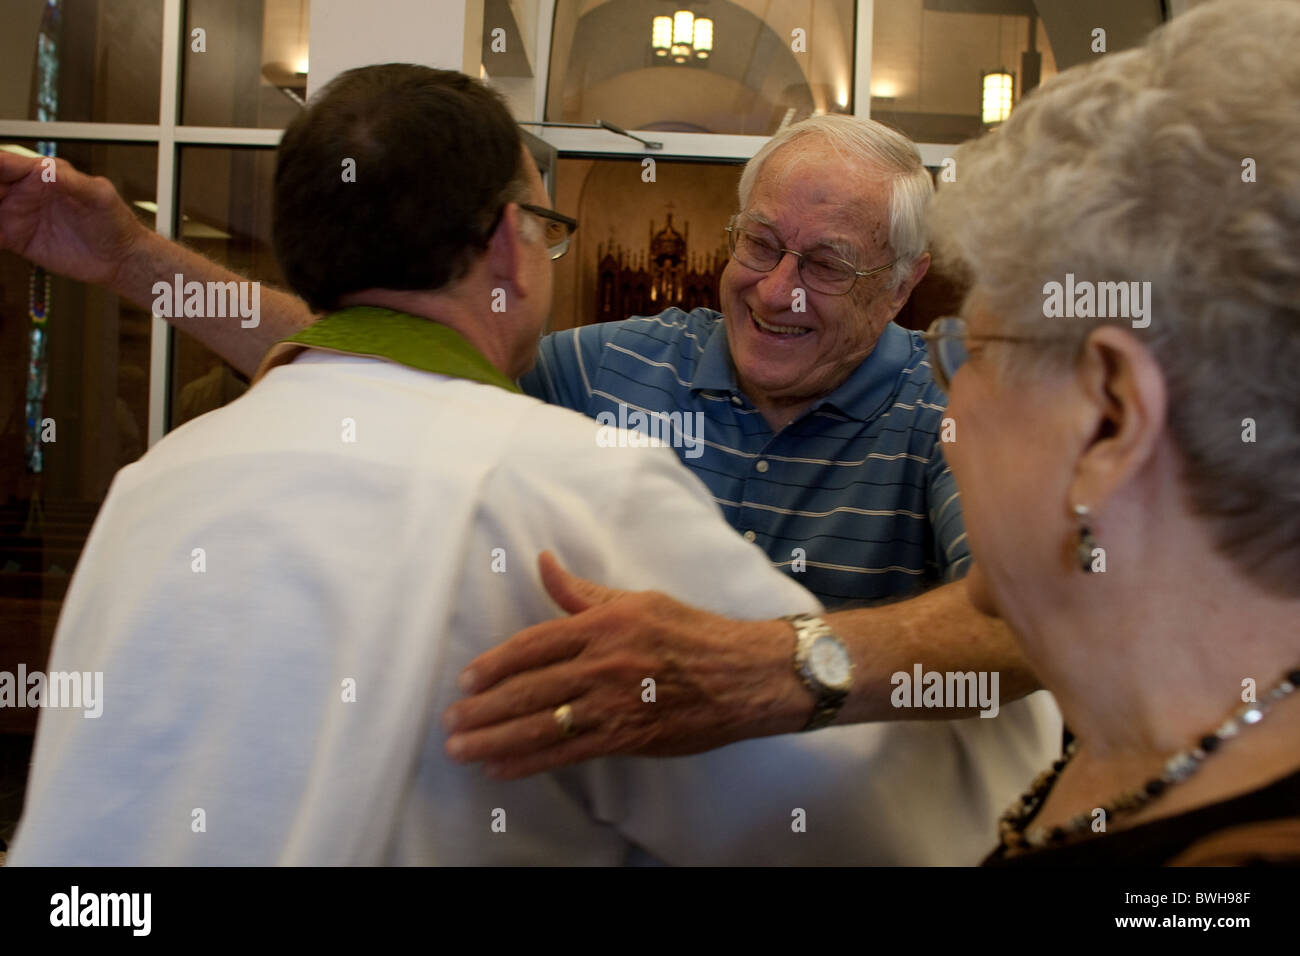 Anglo male congregation member greets pastor with a hug as he leaves Sunday morning service at St. Martin's - Stock Image